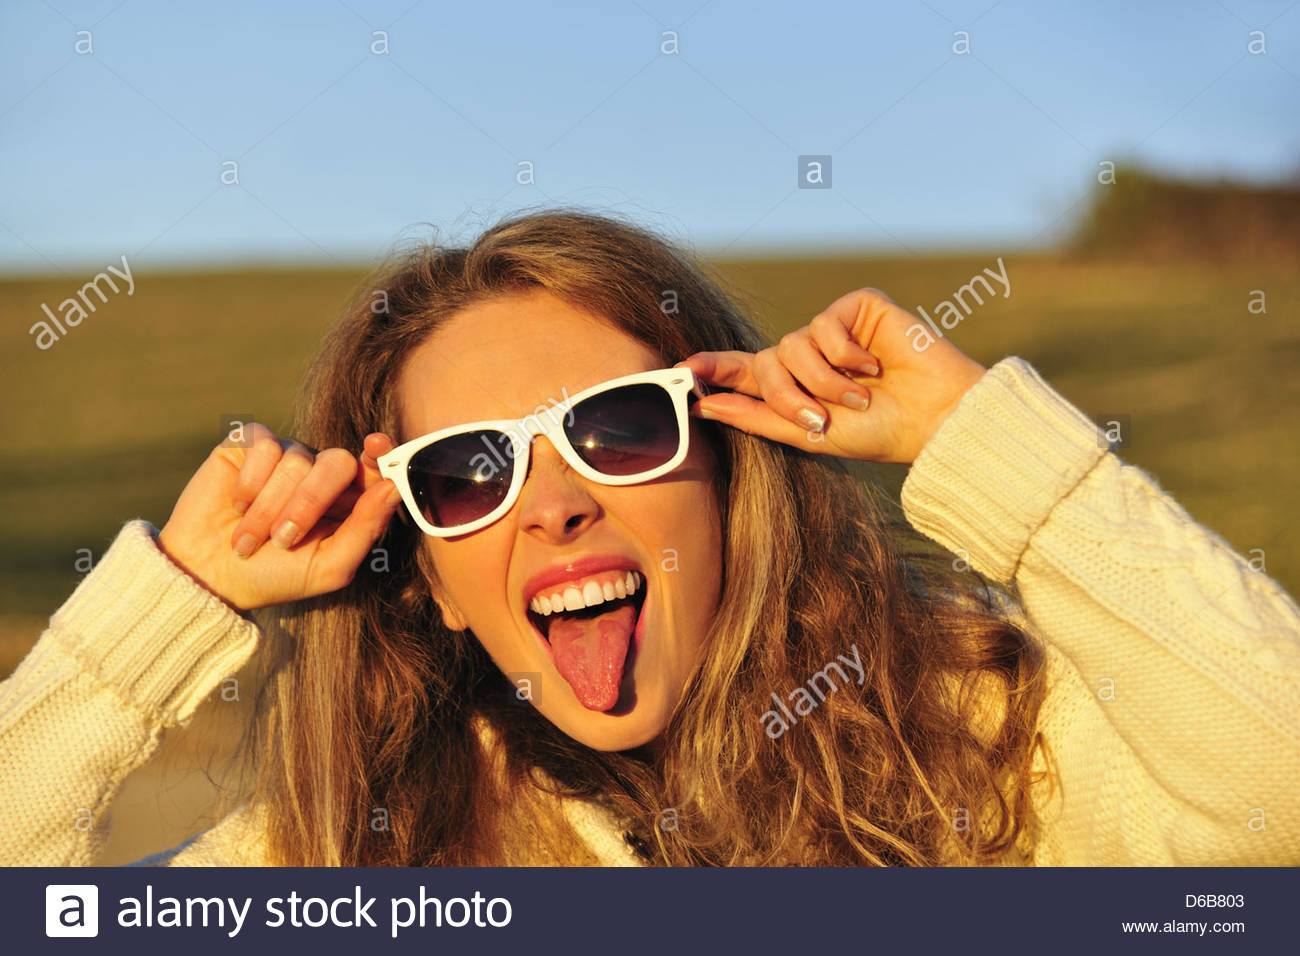 Woman in sunglasses in rural field - Stock Image